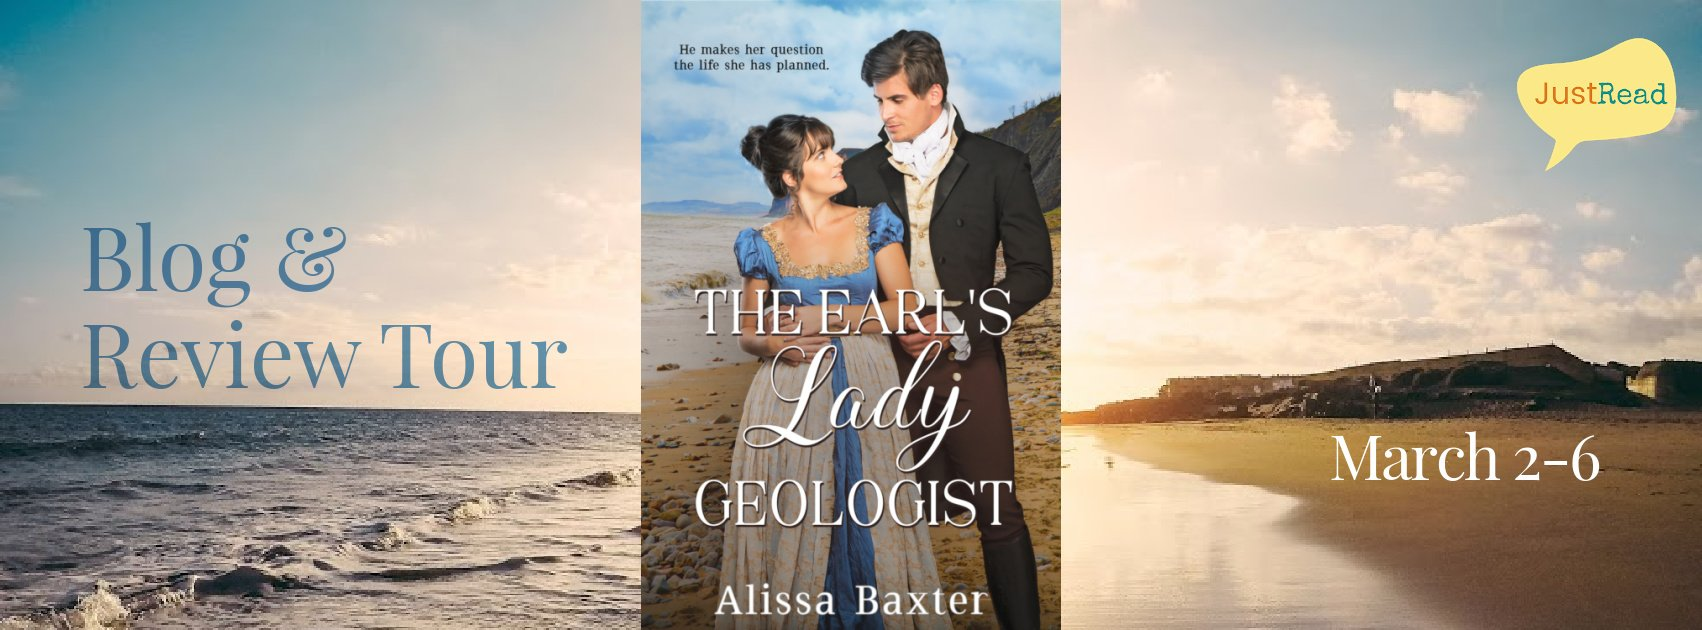 The Earl's Lady Geologist JustRead Blog & Review Tour